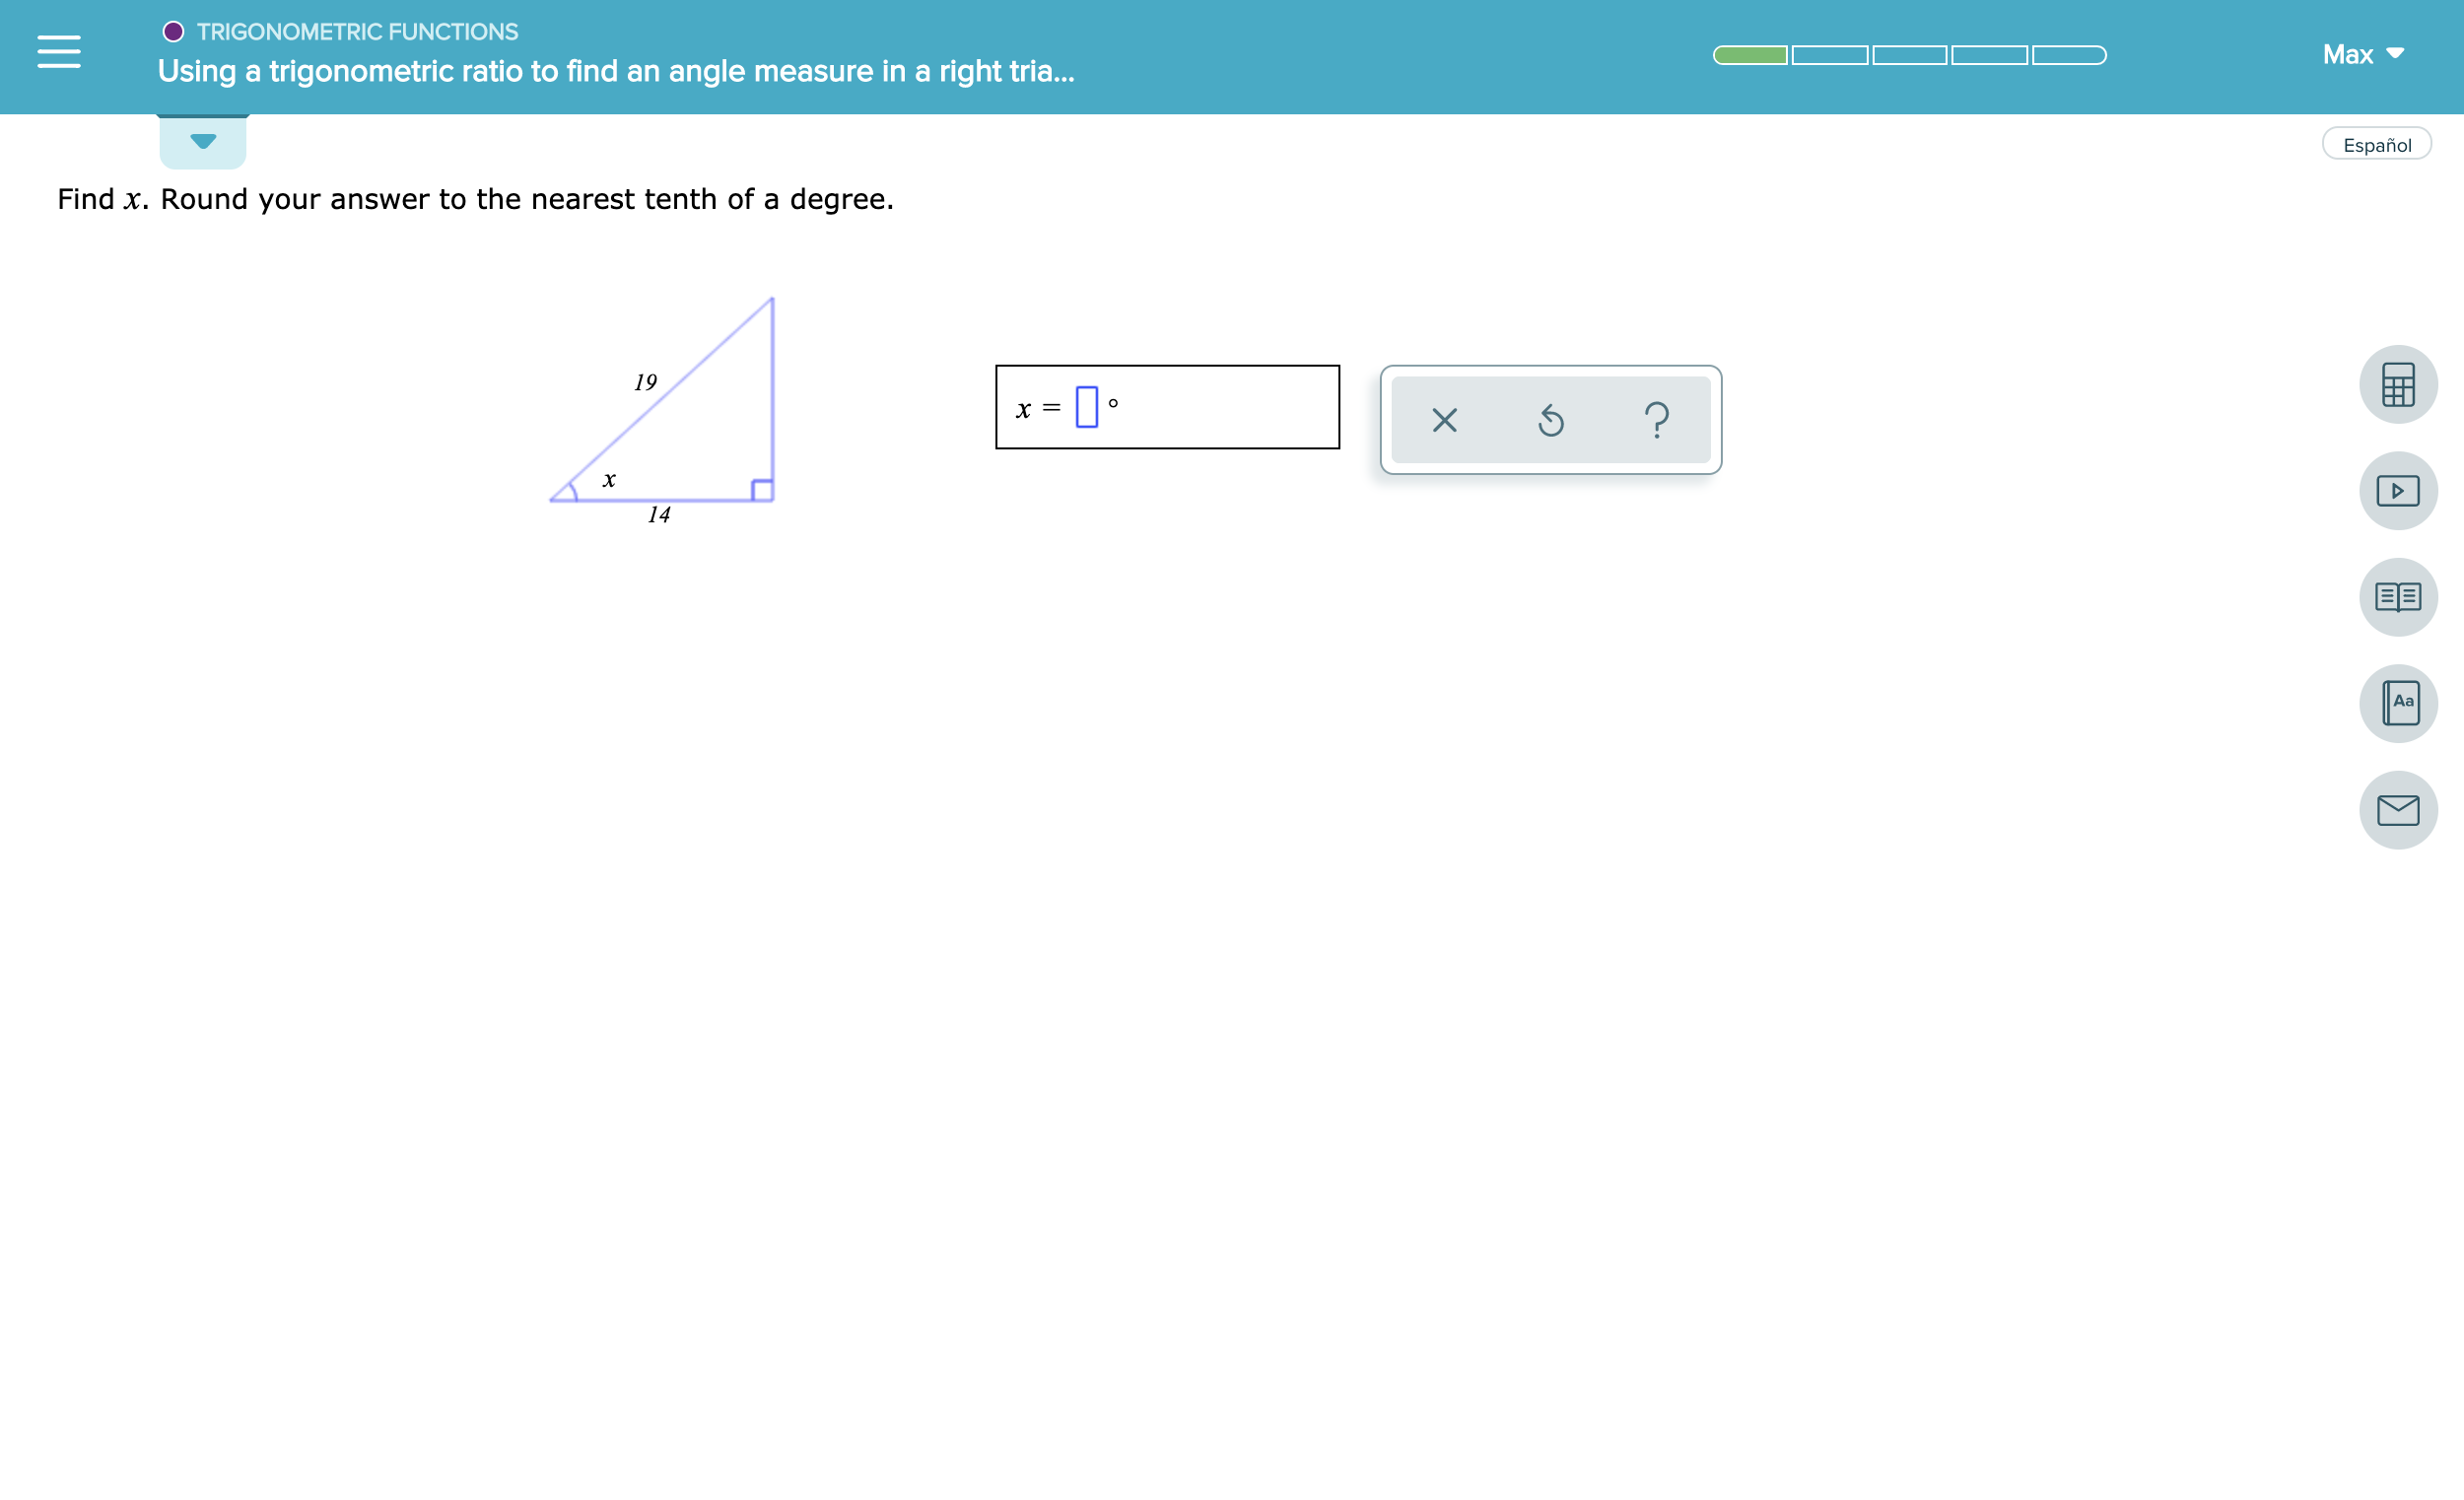 TRIGONOMETRIC FUNCTIONS Mаx Using a trigonometric ratio to find an angle measure in a right tria... Español Find x. Round your answer to the nearest tenth of a degree. 19 O ? х — х 14 Aa